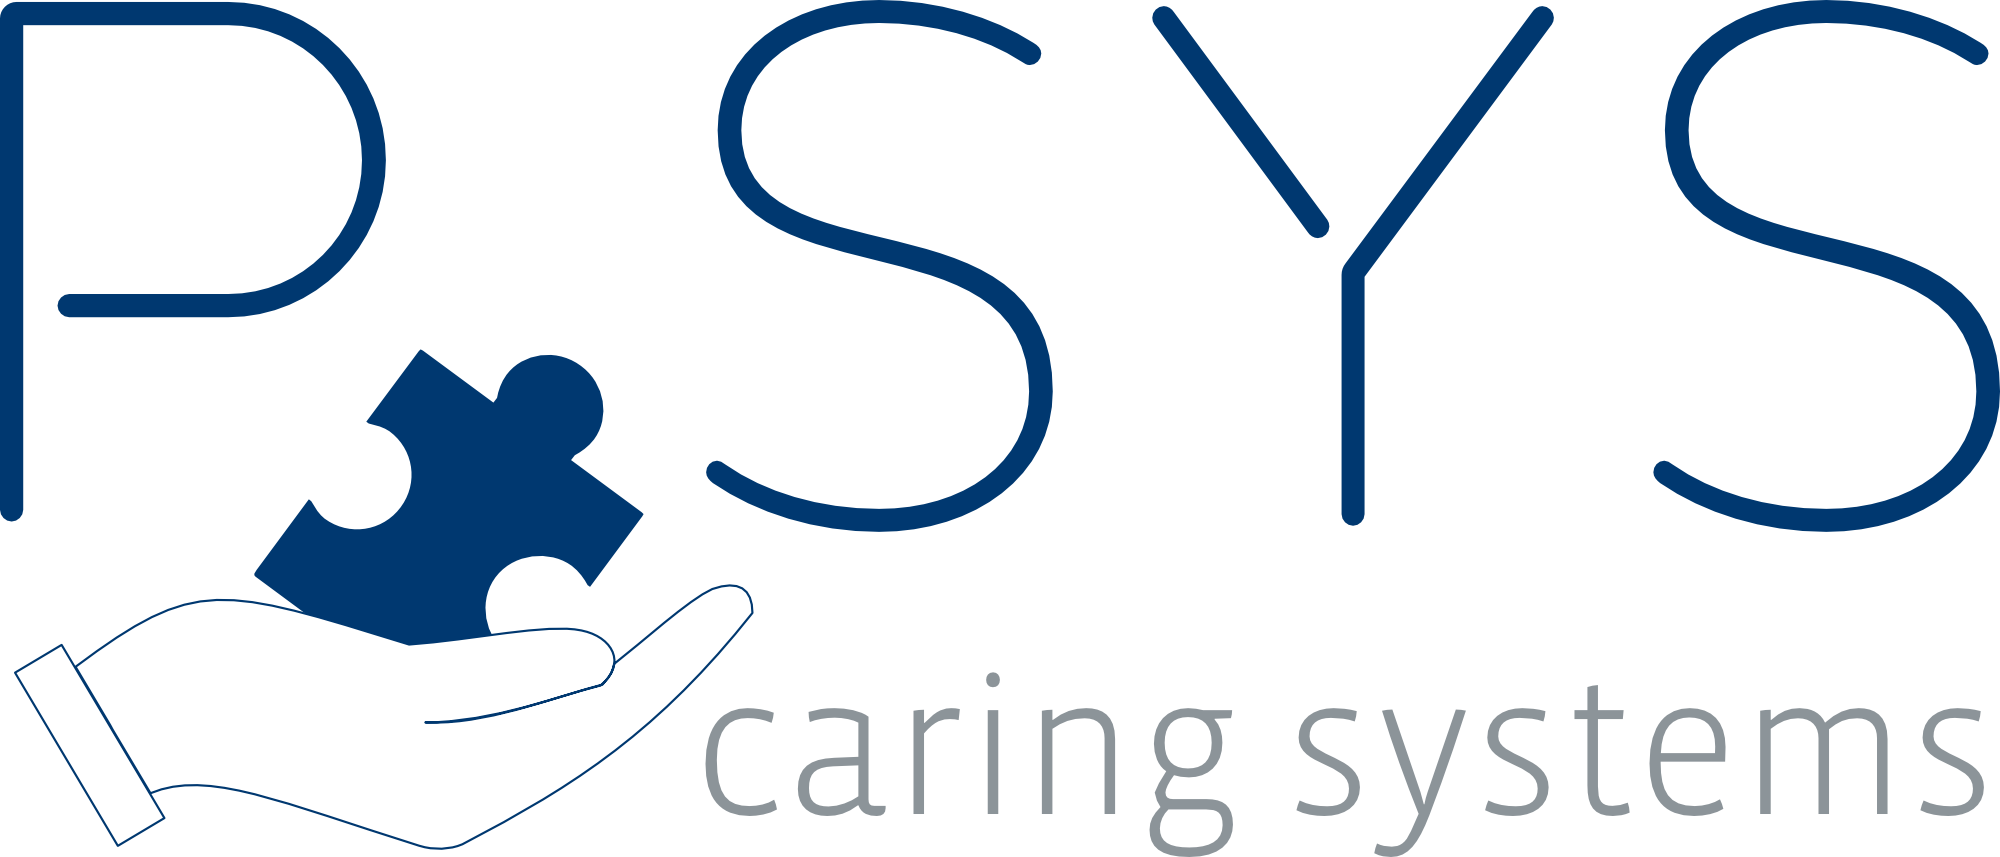 P.SYS caring systems GmbH